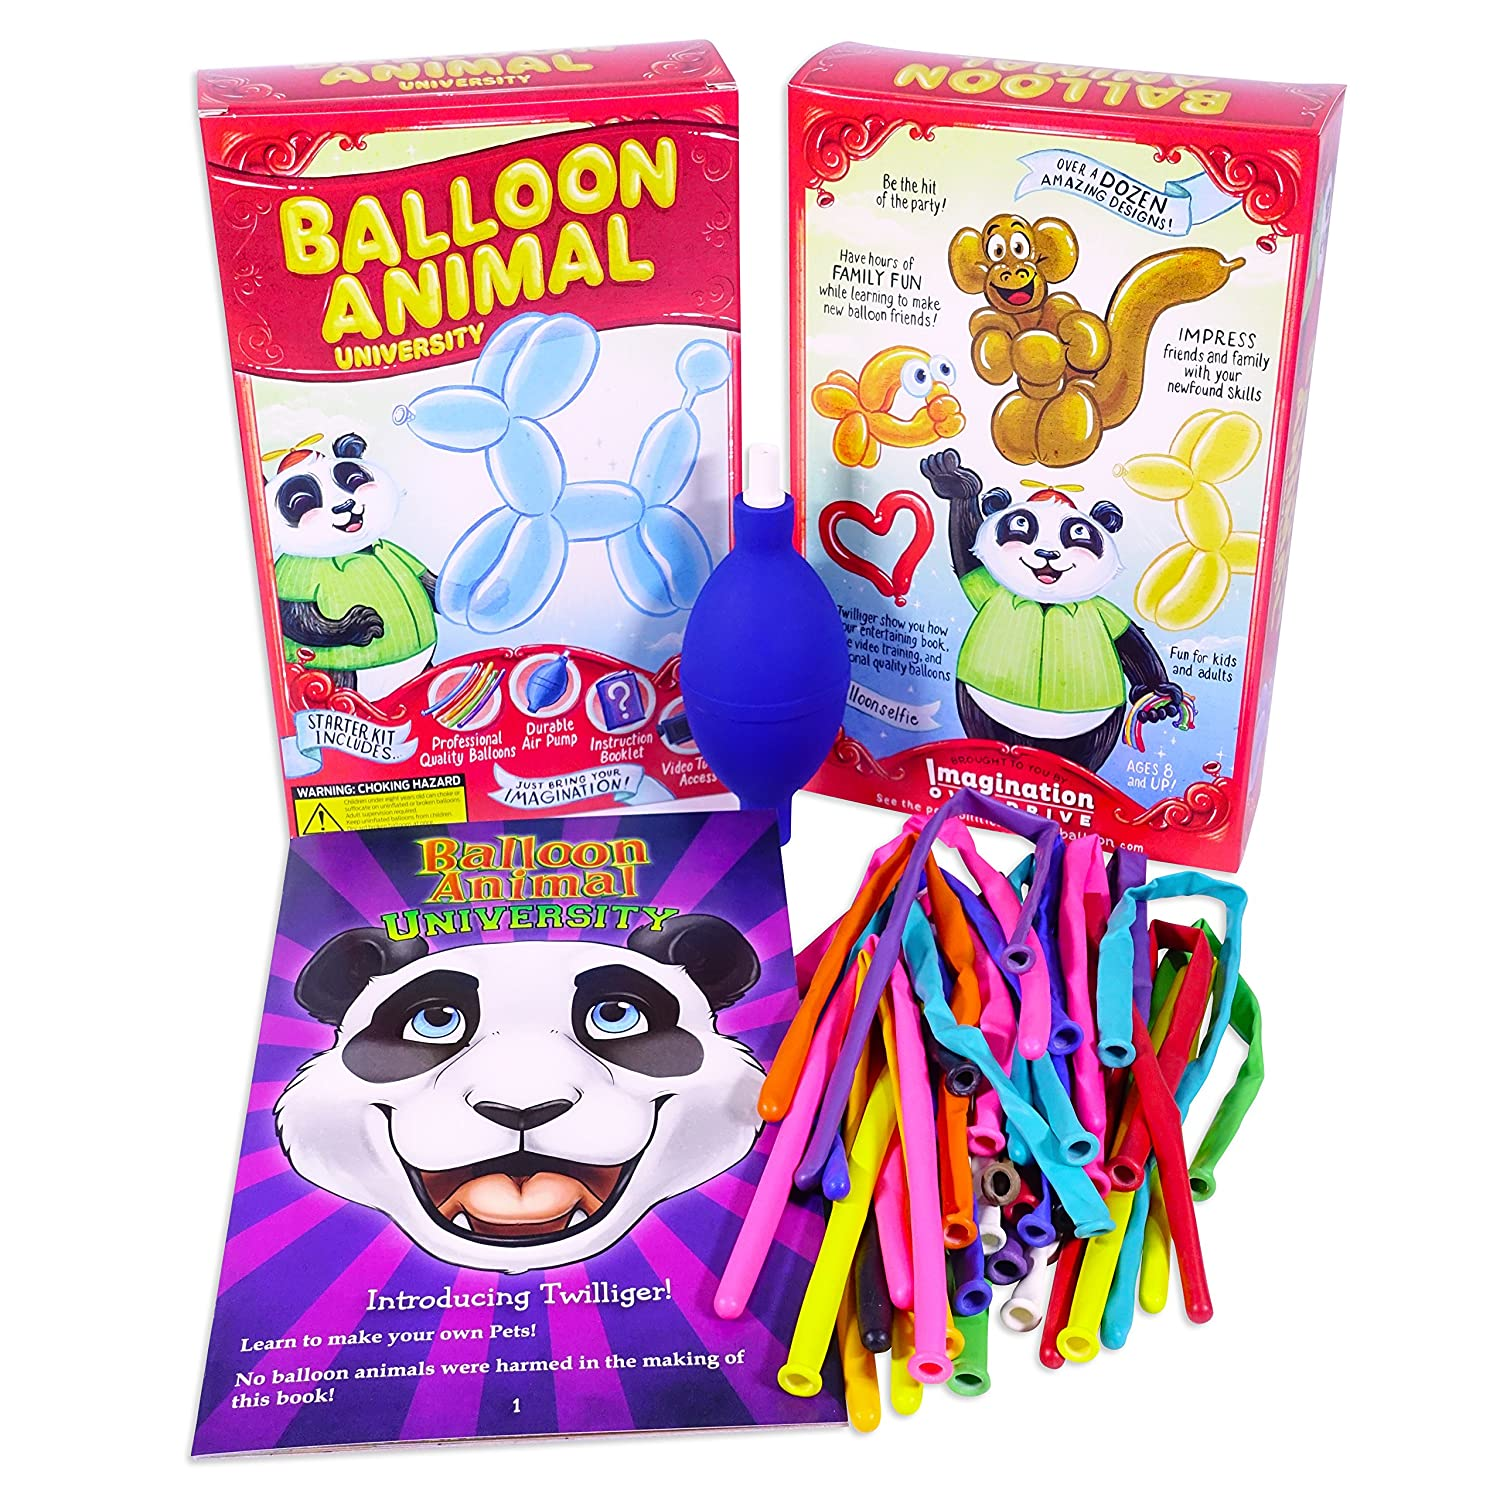 Balloon Animal University Kit NOW with even more creations! 25 Balloons Custom Colors with Qualatex, Unbreakable Air Pump, Instruction Book and Videos. Learn to Make Balloon Animals Starter Kit Imagination Overdrive Inc. Standard Edition